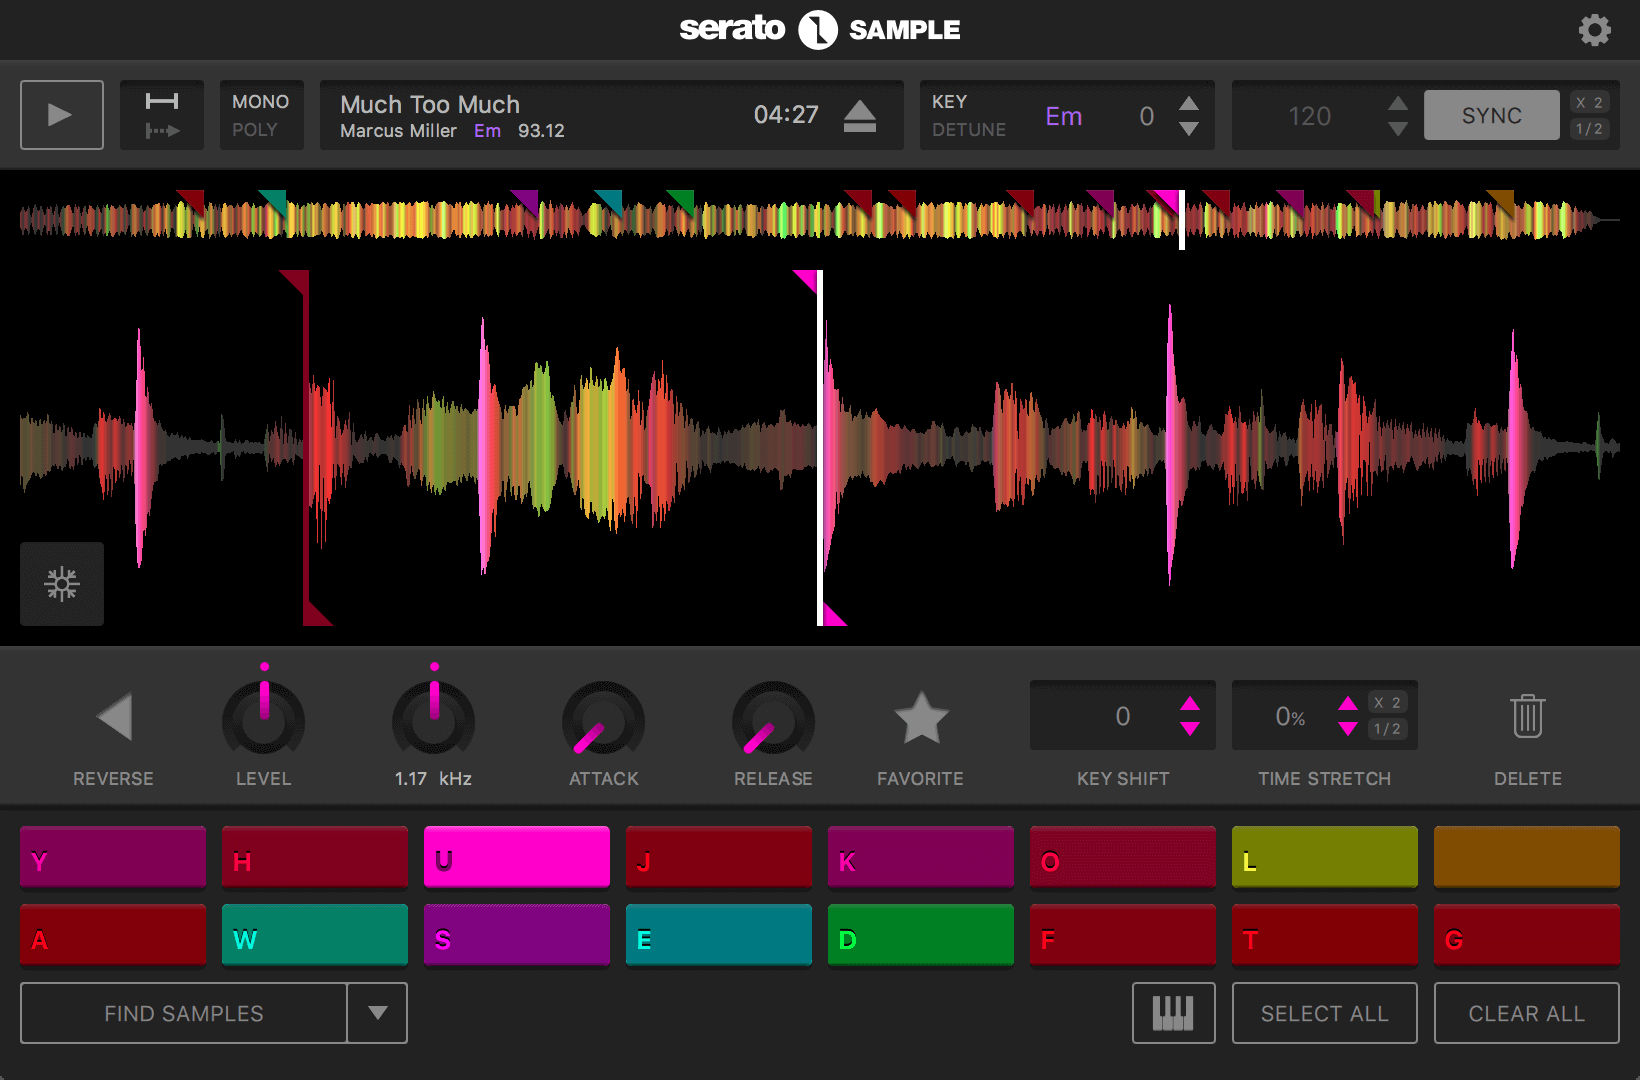 Serato Sample sampling plugin (VST/AU) now available